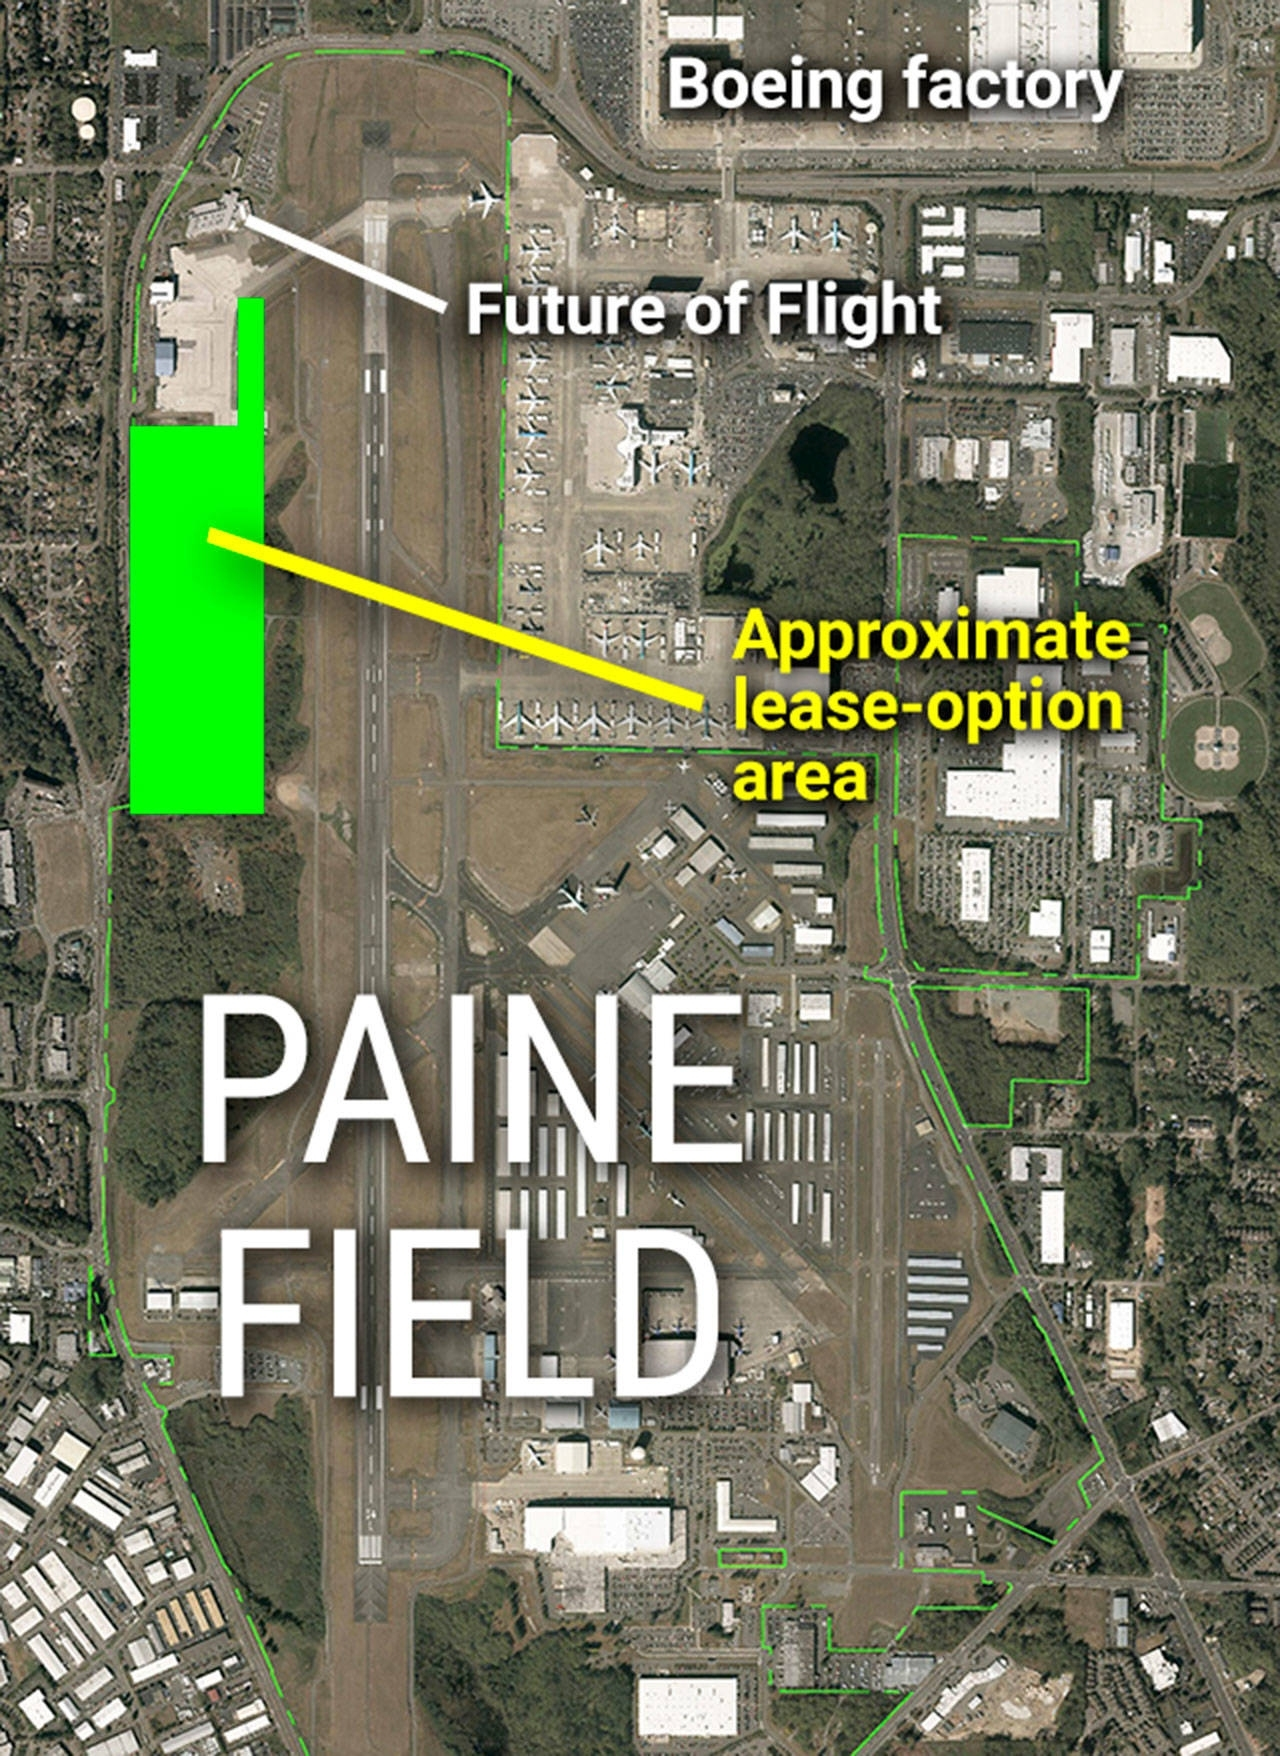 Snohomish County Works To Boost Development Around Airports within Boeing Factory Everett Map